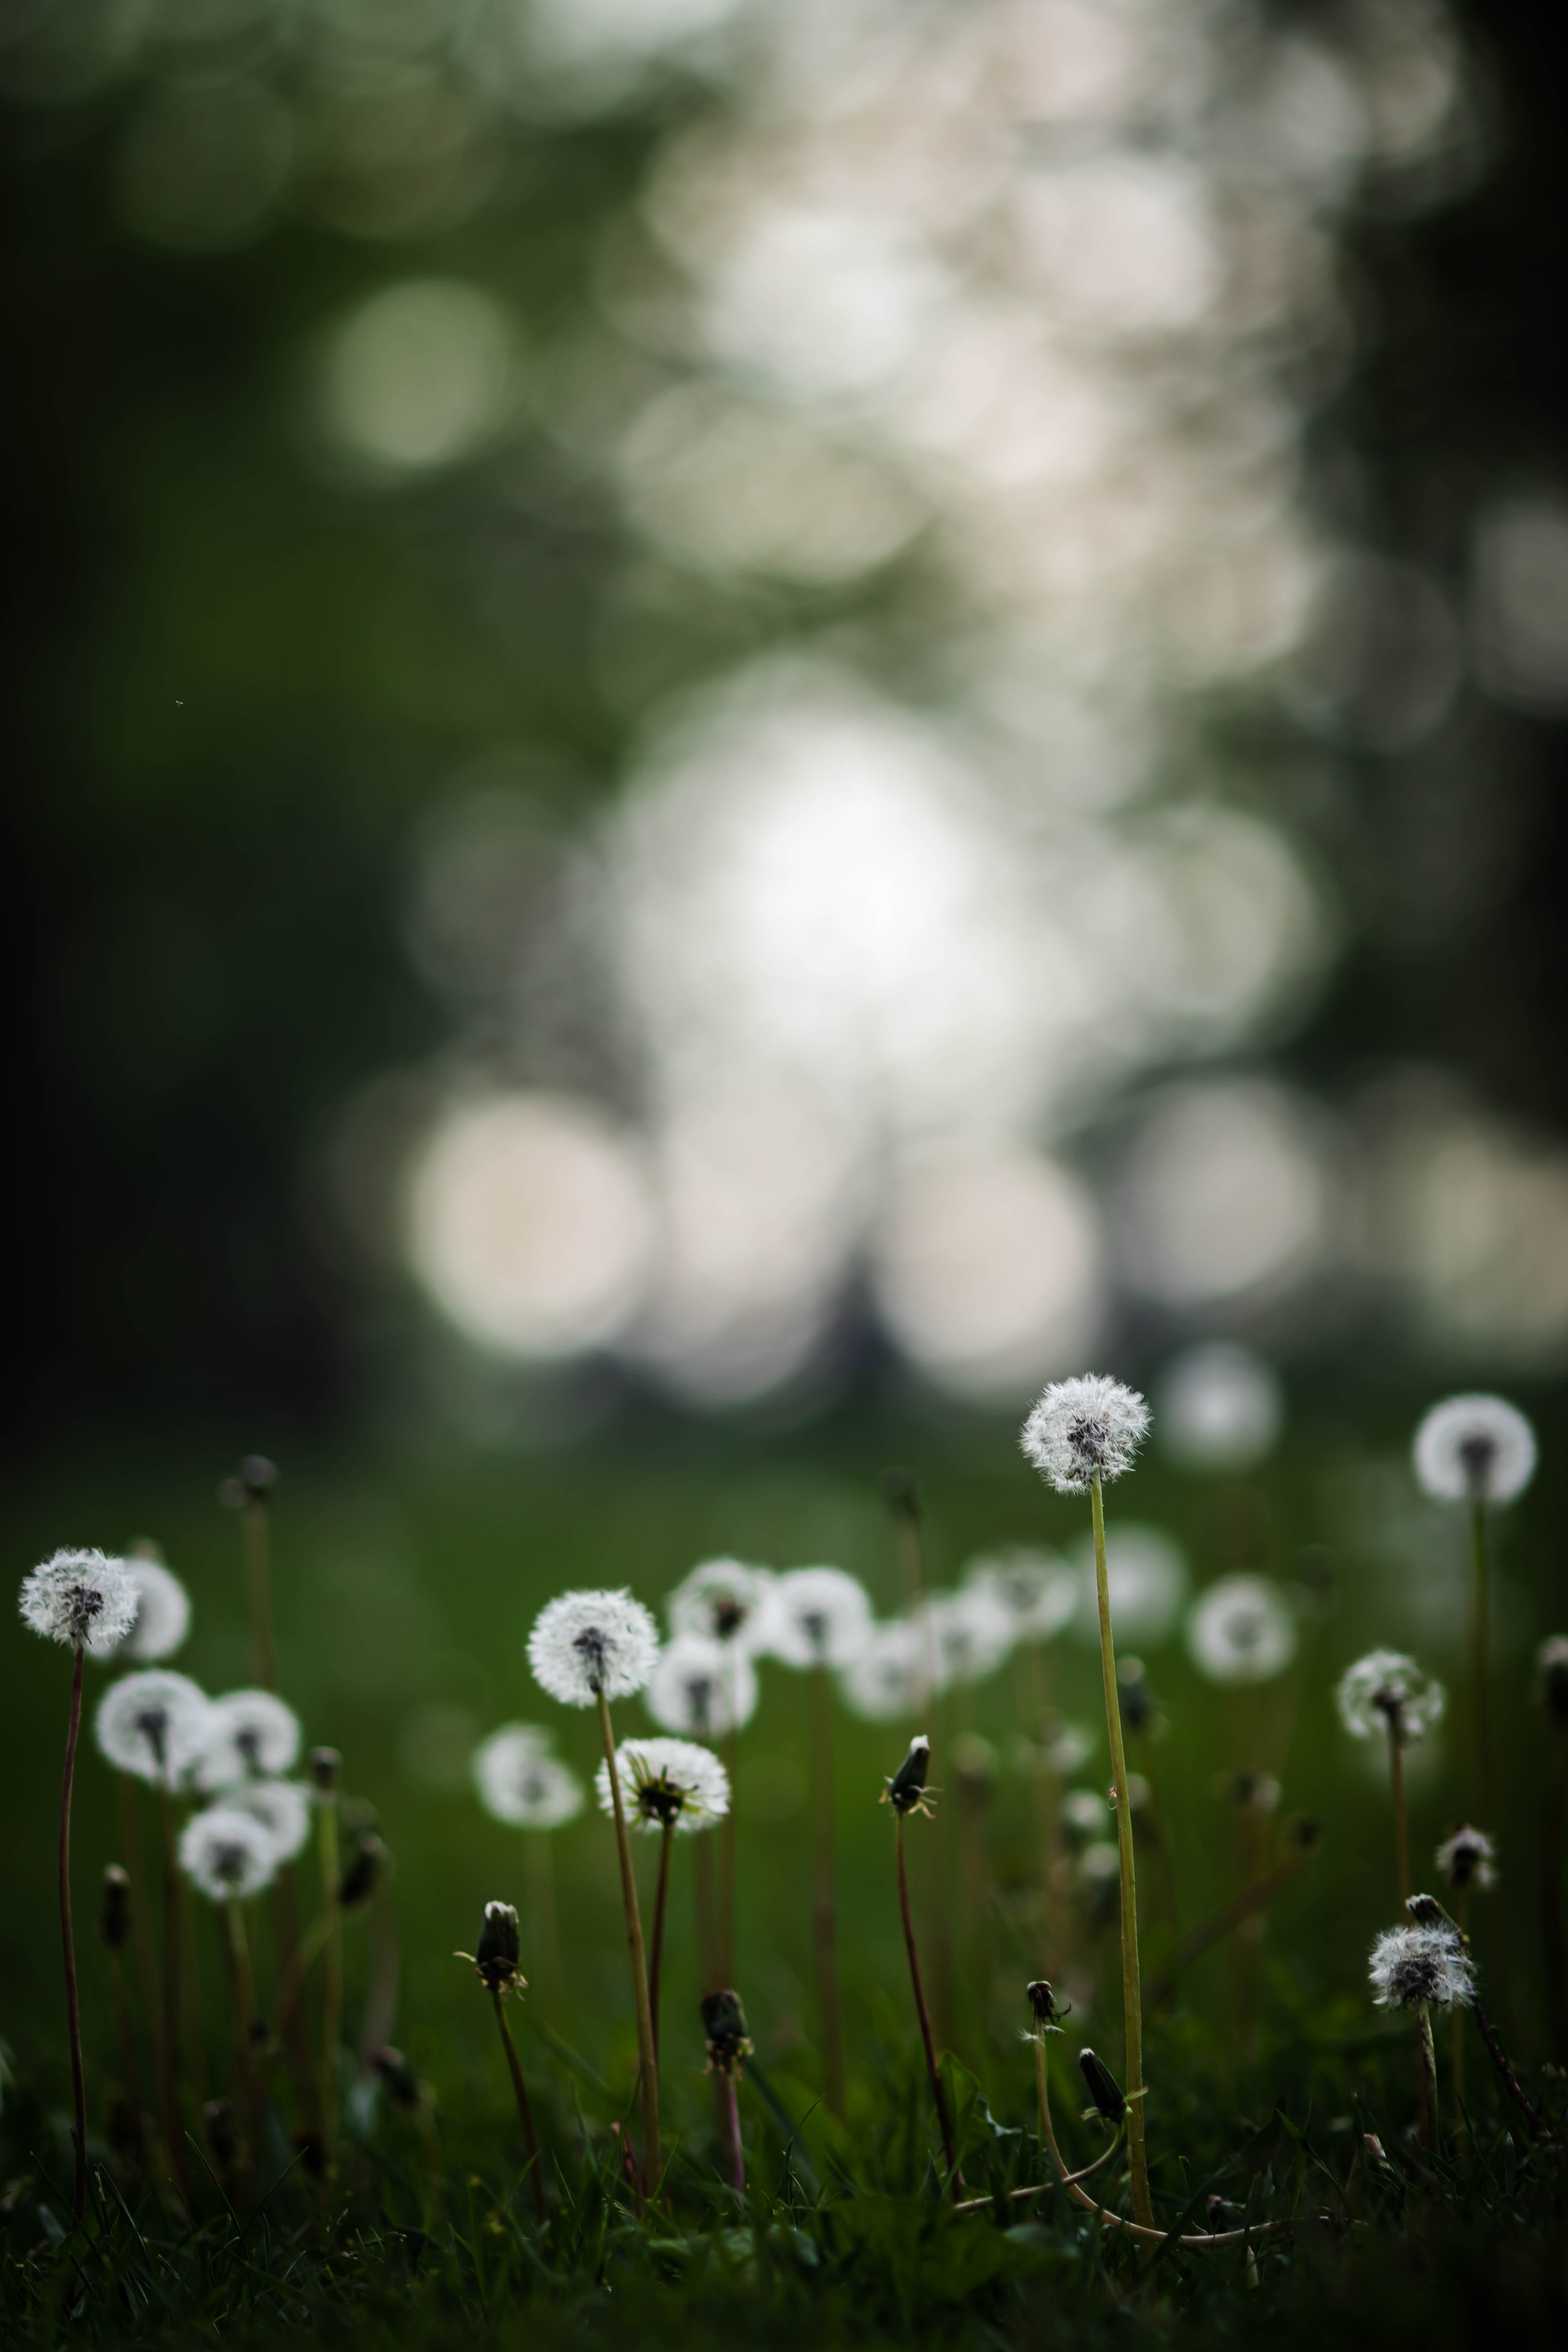 66520 download wallpaper Plants, Nature, Grass, Dandelions, Field screensavers and pictures for free